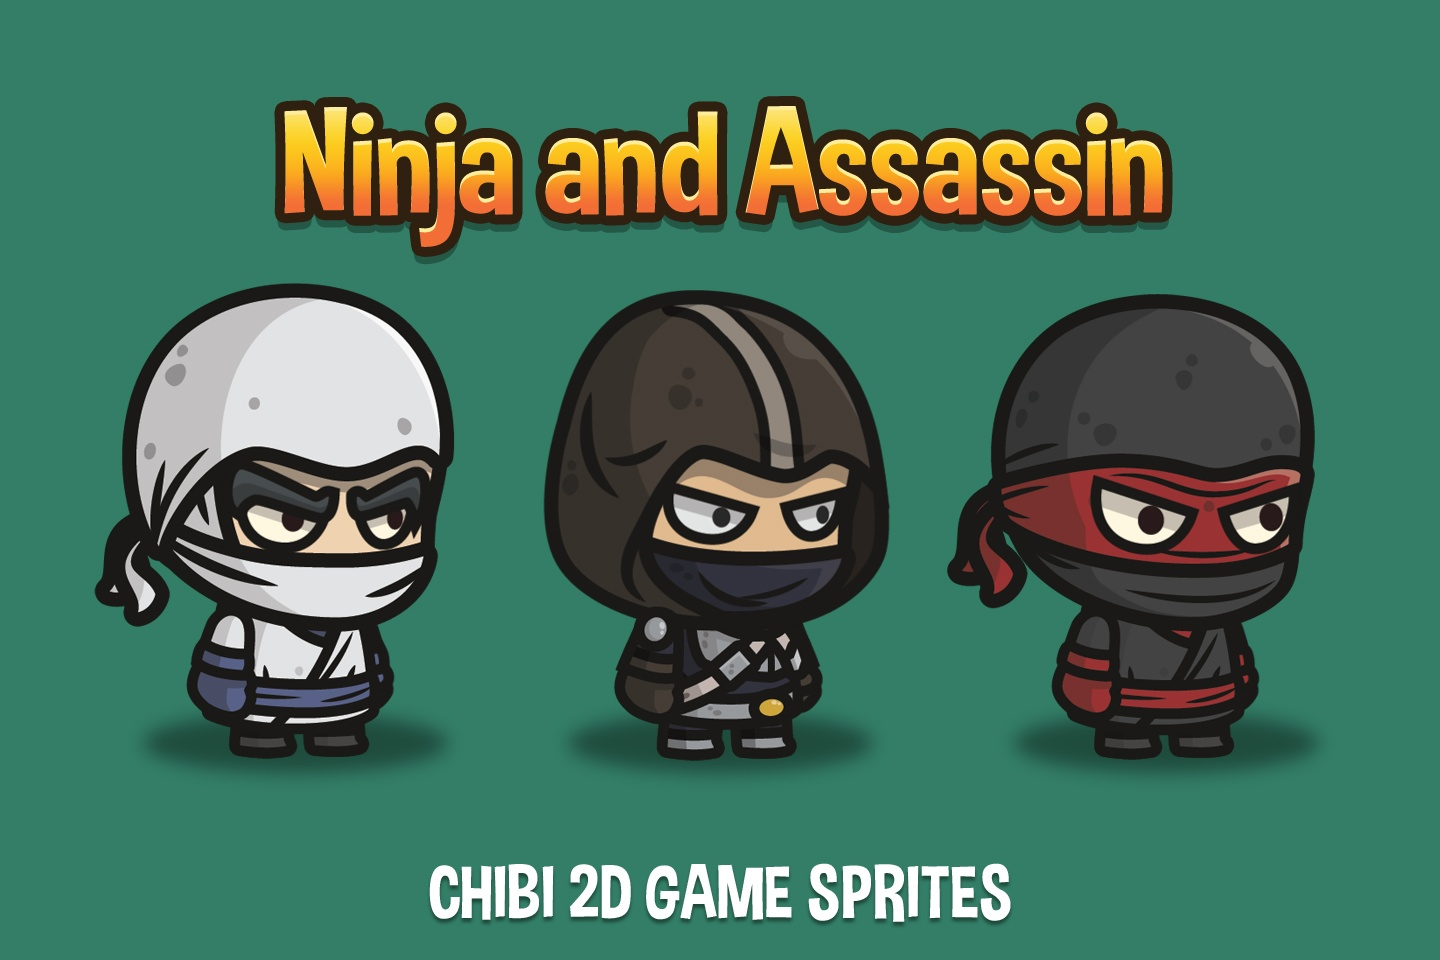 Ninja and Assassin Chibi 2D Game Sprites